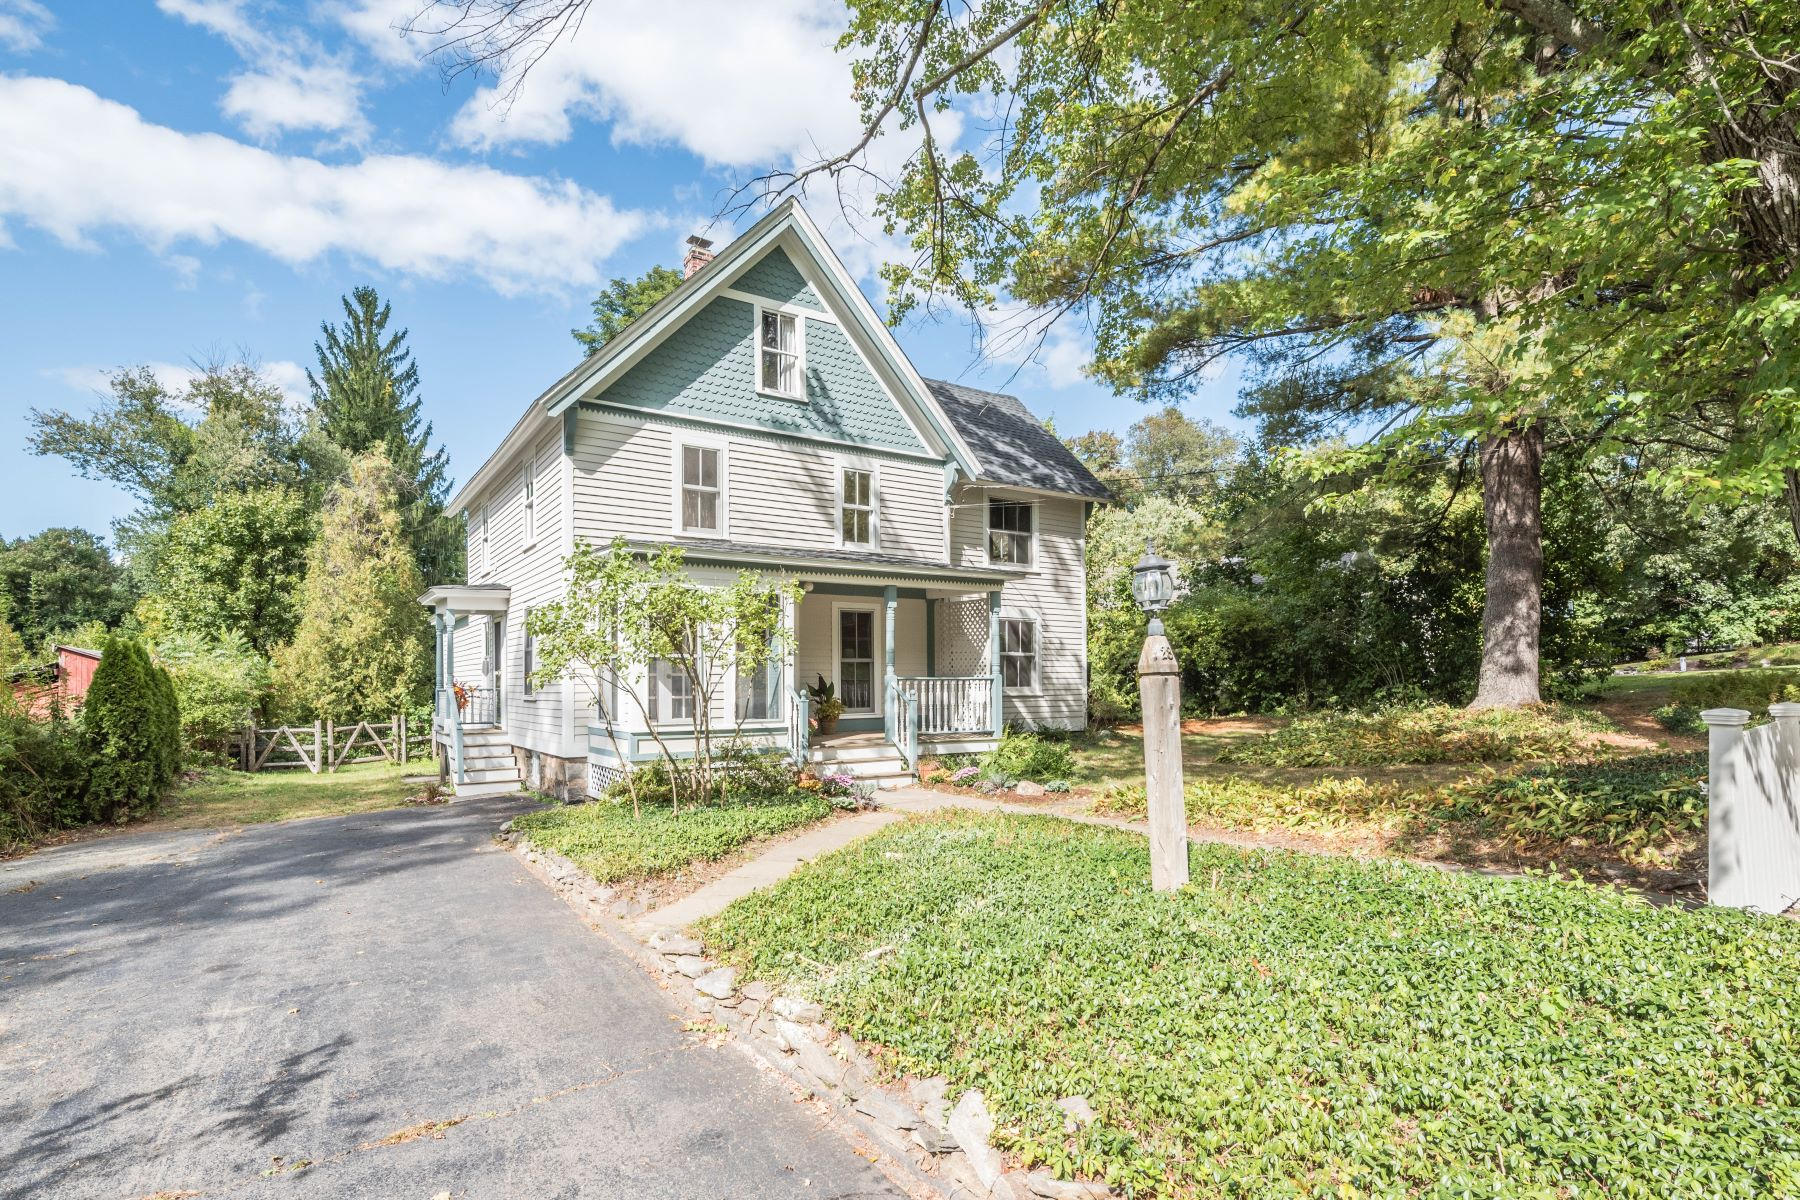 Single Family Homes for Sale at 28 Gildersleeve Avenue 28 Gildersleeve Ave Canton, Connecticut 06019 United States